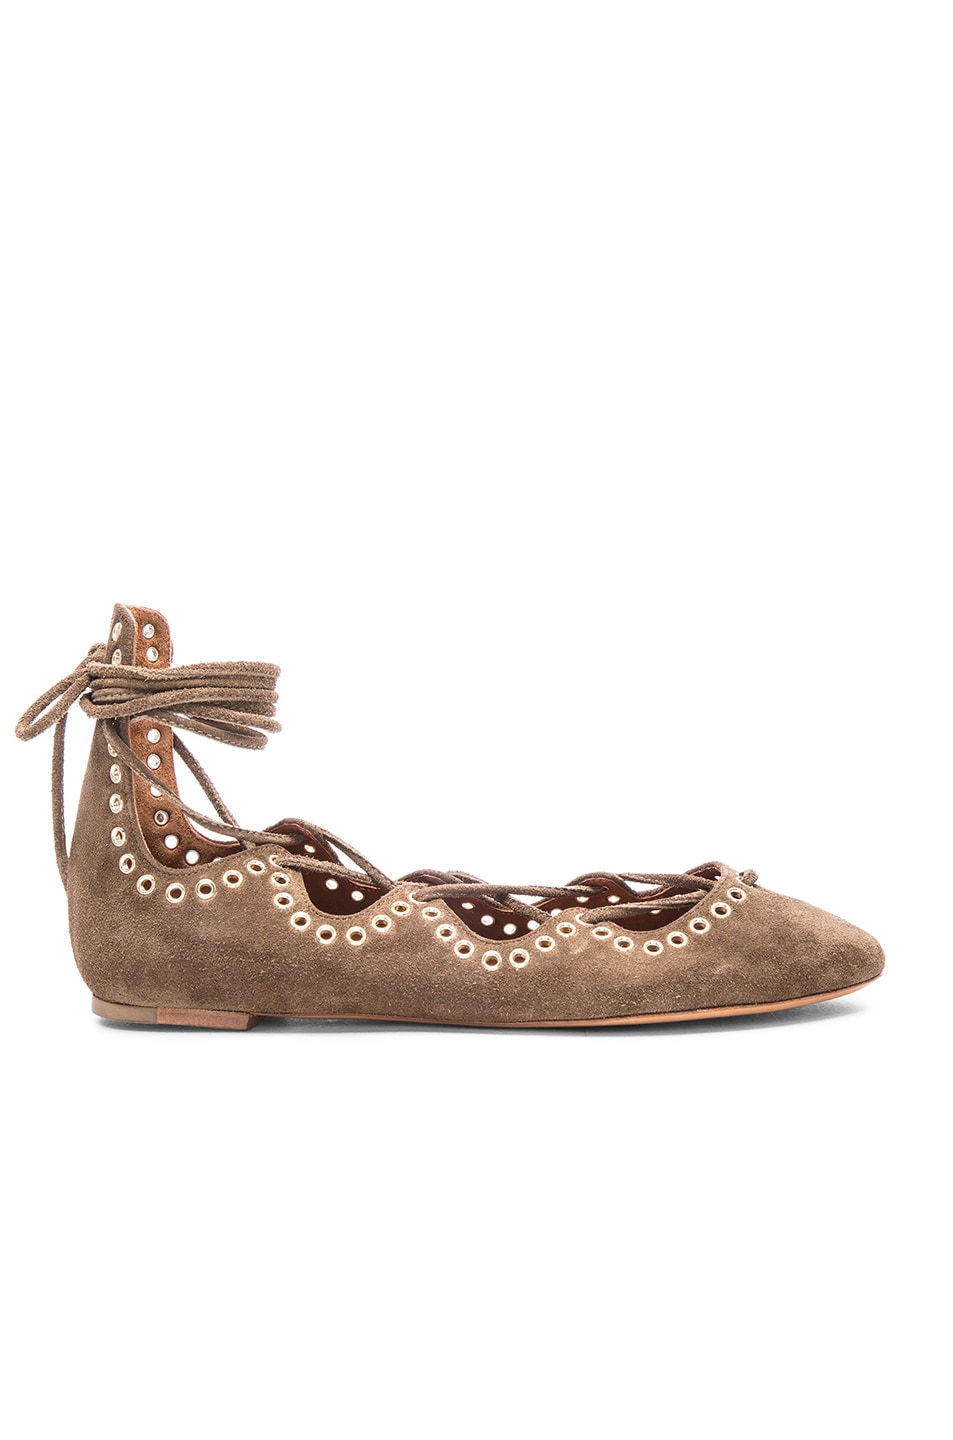 Image 1 of Isabel Marant Leo Eyelet Velvet Flats in Brown